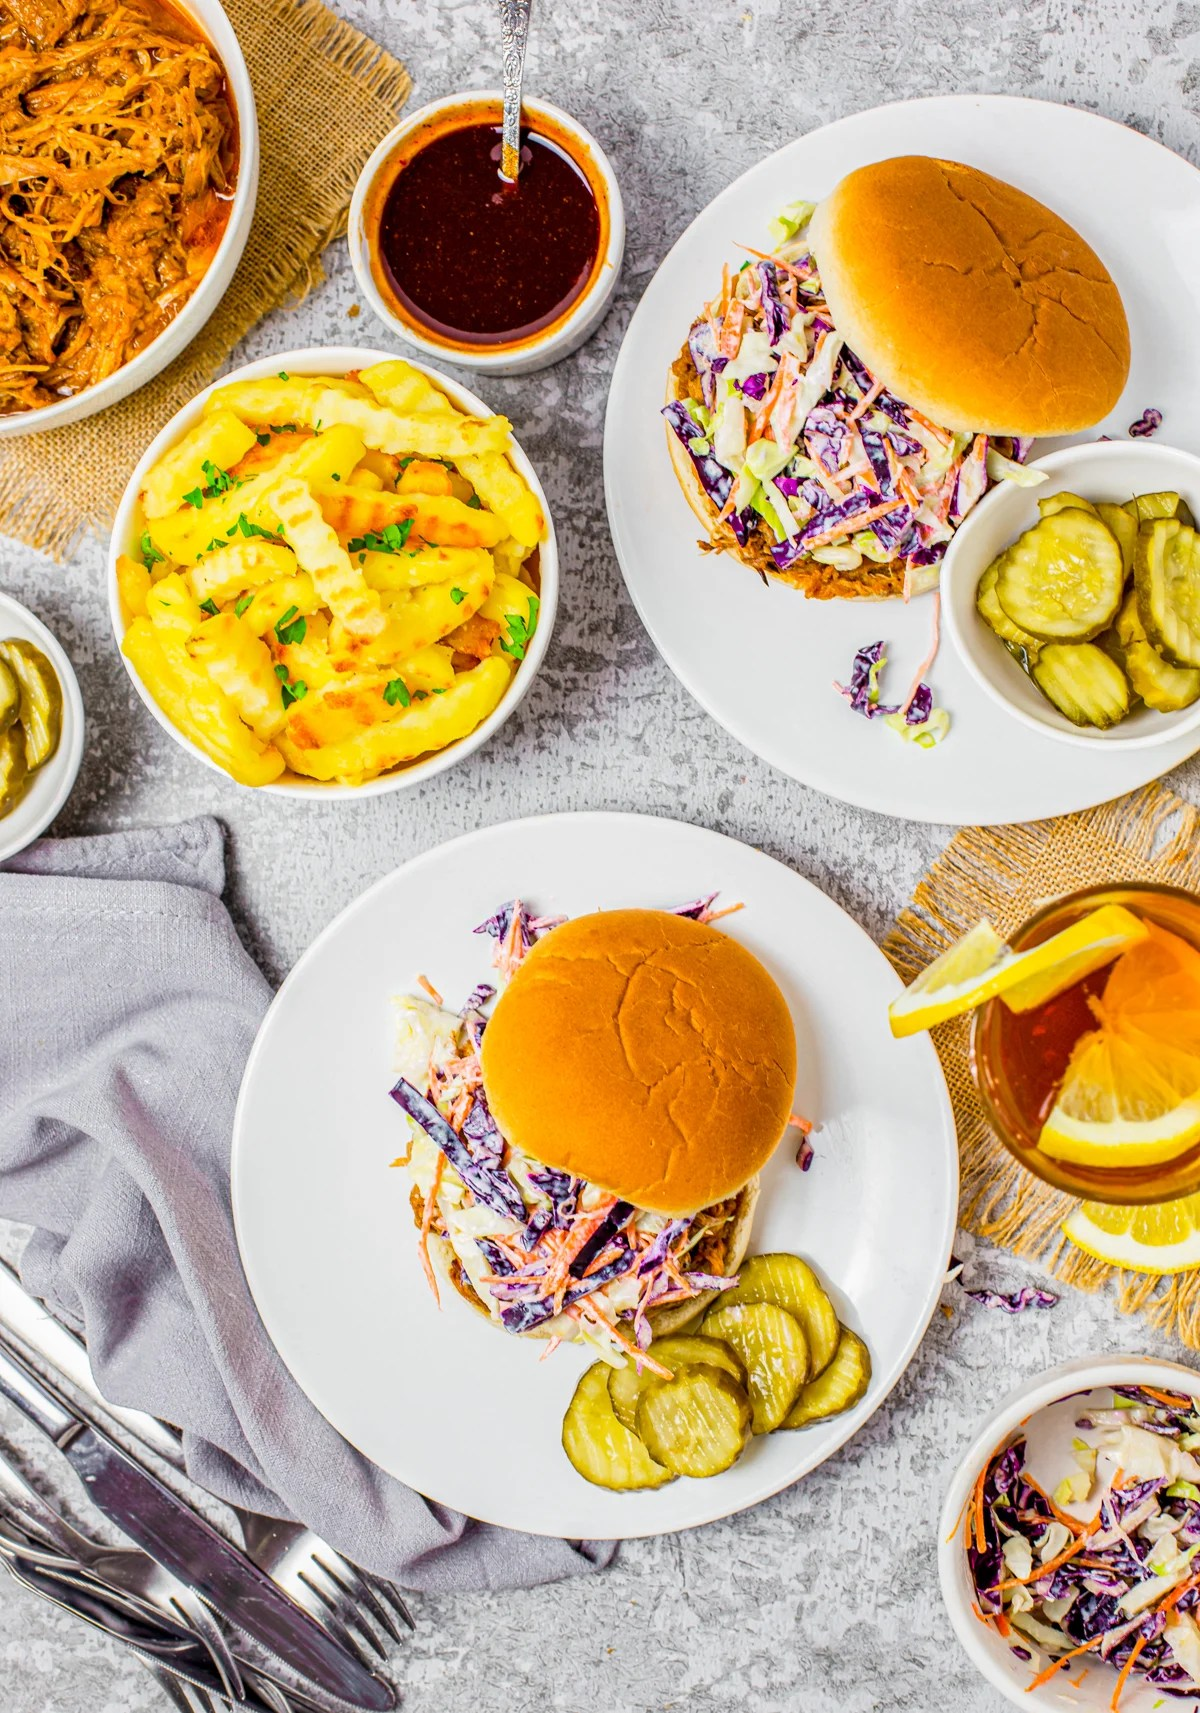 Overhead photos of two sandwiches Ono white plates with sides surrounding it